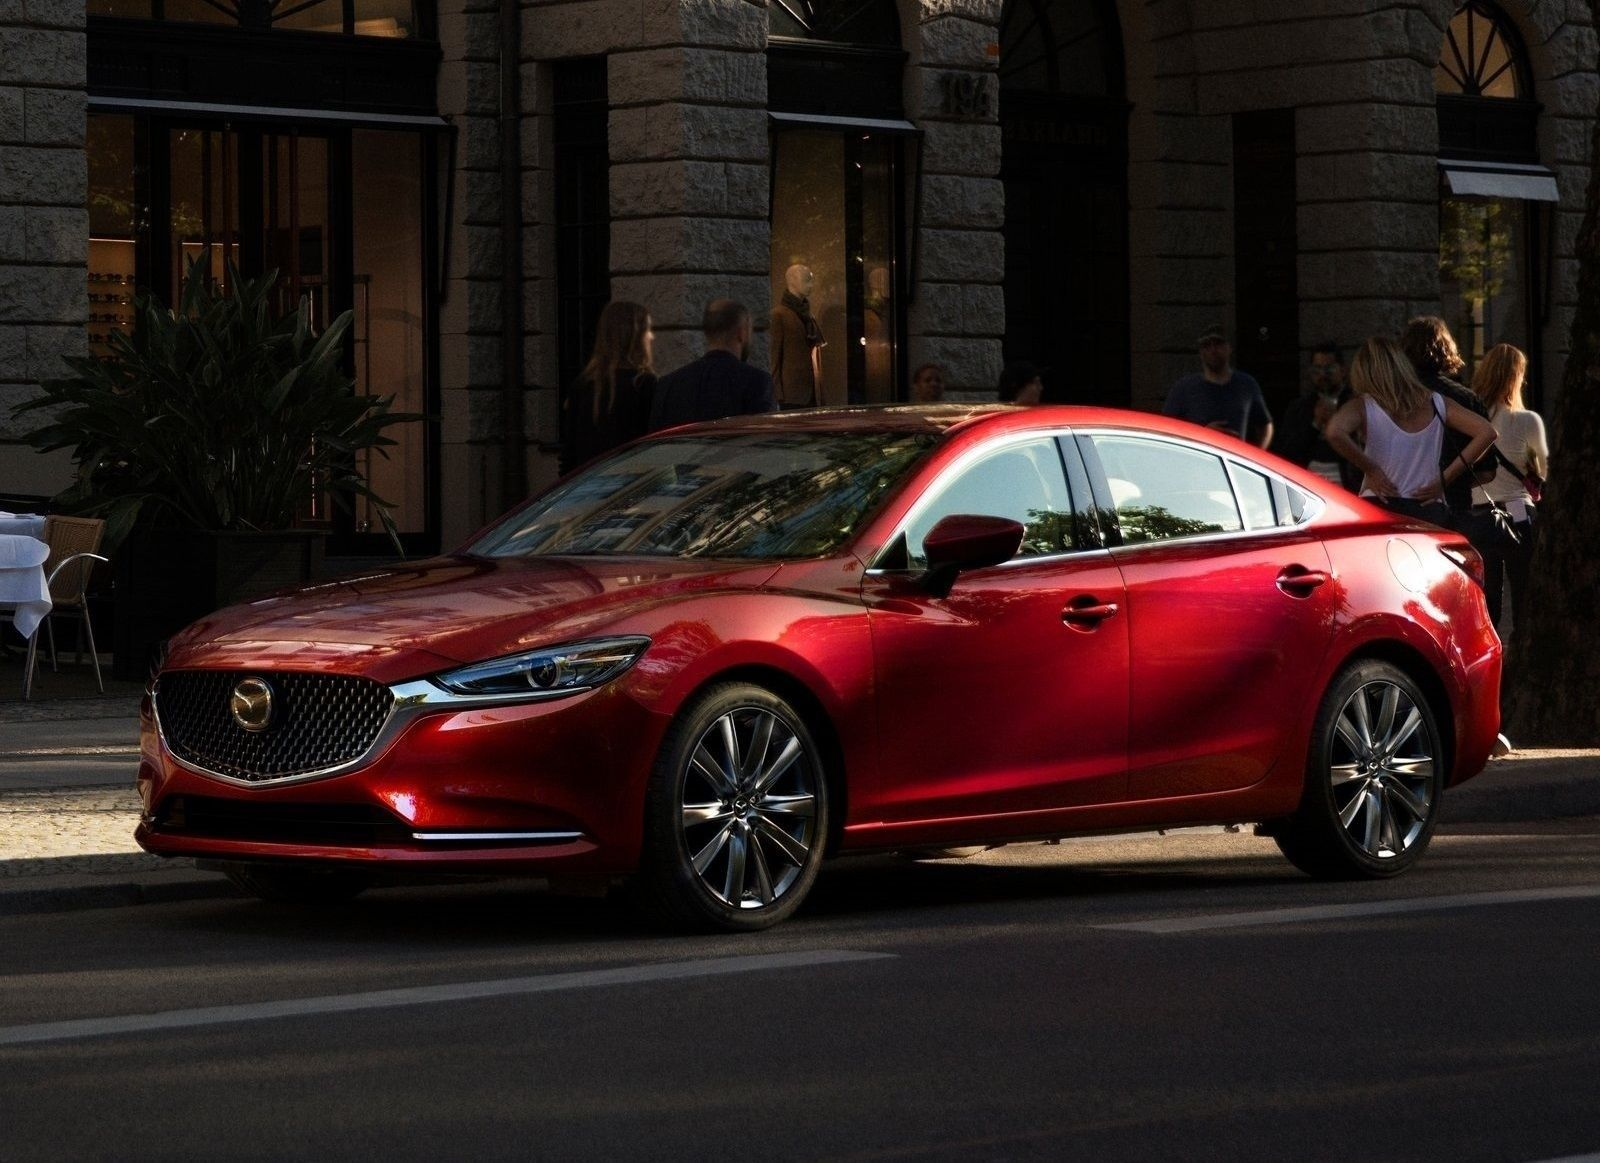 Mazda 2019 Mexico Specs and Review Check more at https